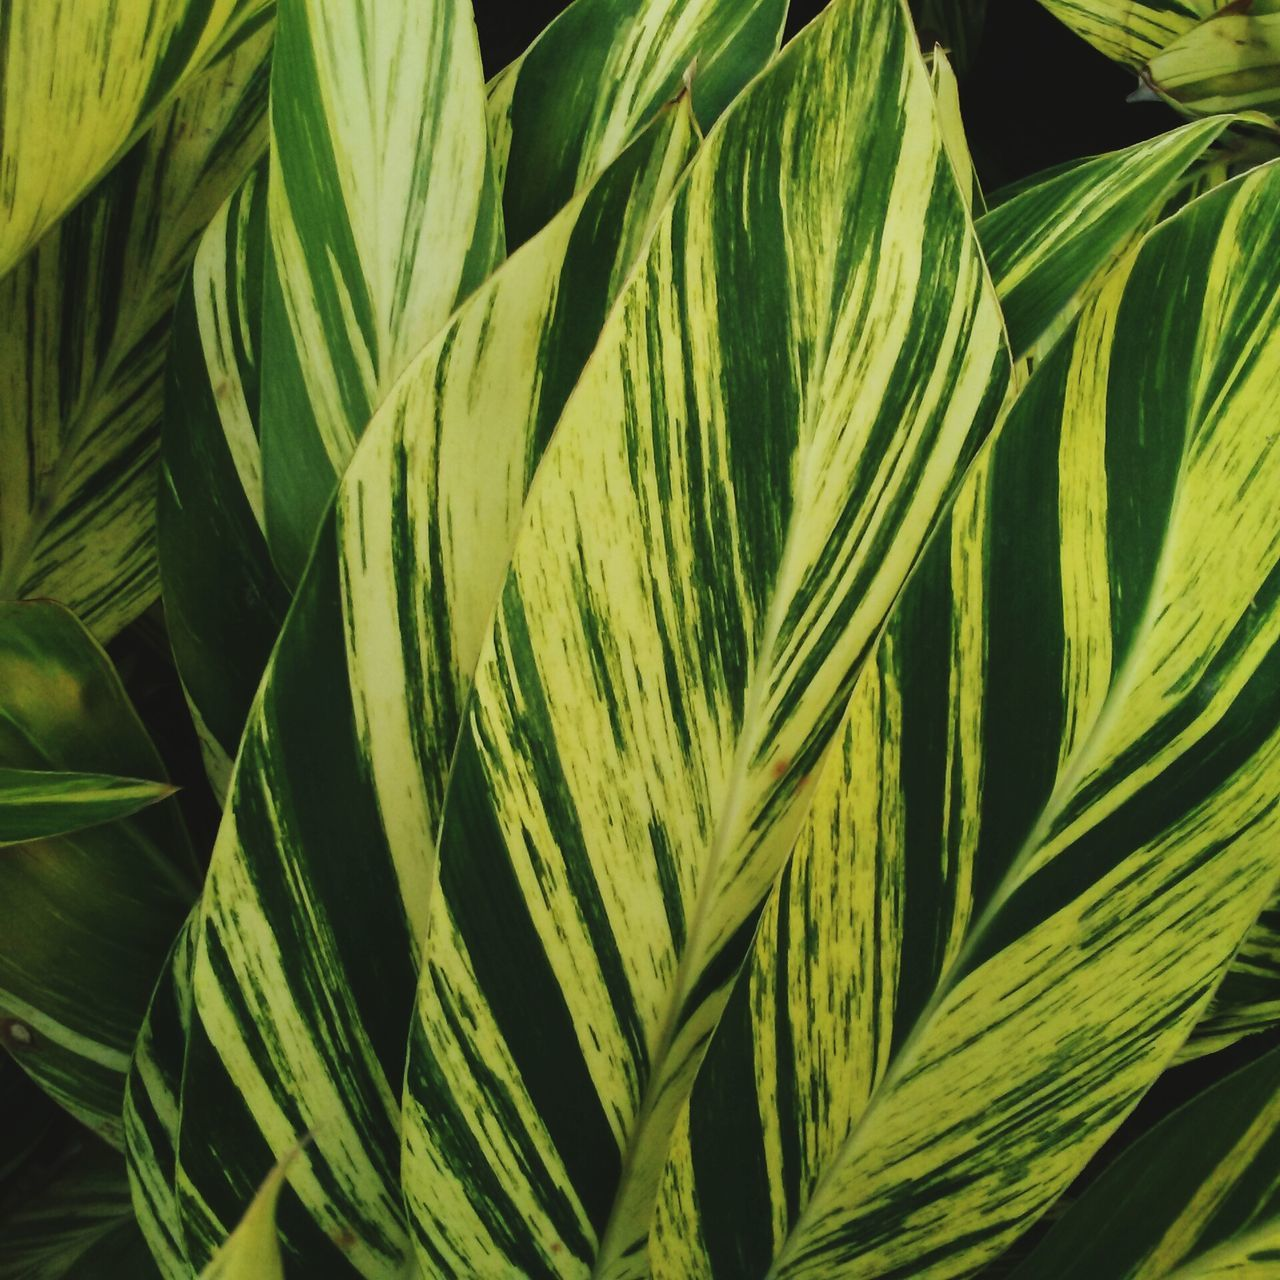 Nature Growth Close-up Green Color Full Frame Backgrounds Leaf Beauty In Nature Pattern Lines And Shapes No People Outdoors Day Freshness Capture The Moment The Purist (no Edit, No Filter) Eyem Best Shots Fragility Freshness Plant Green Color Outdoors Photograpghy